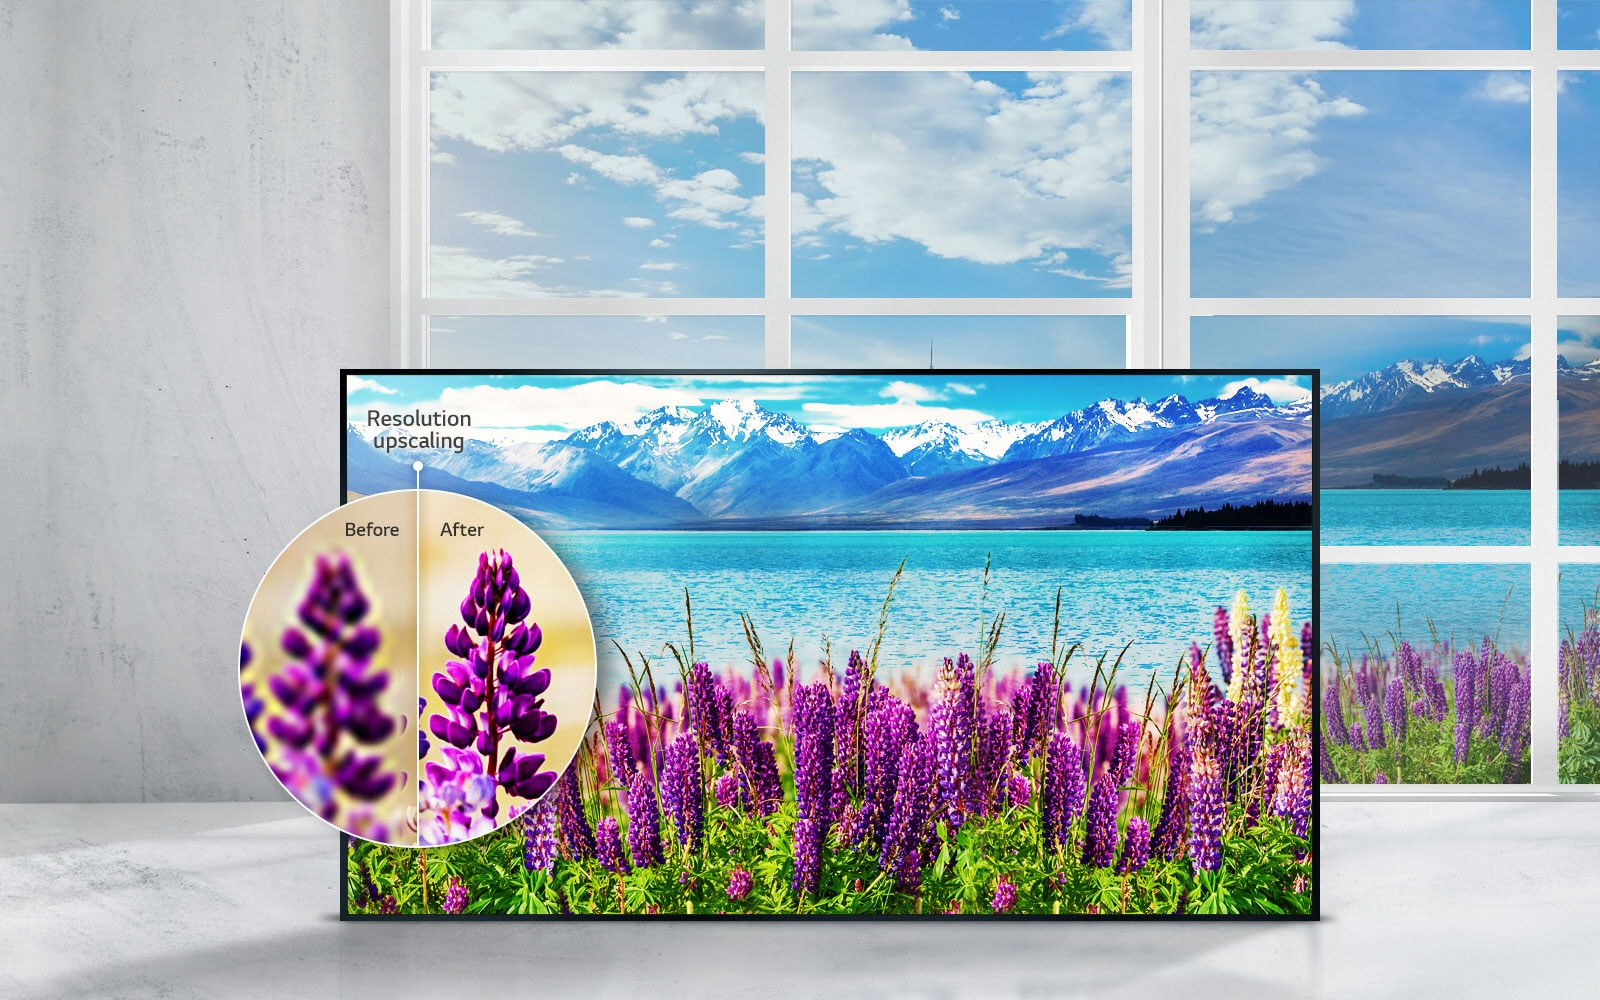 LG TV's - Upscale the resolution to 4K quality